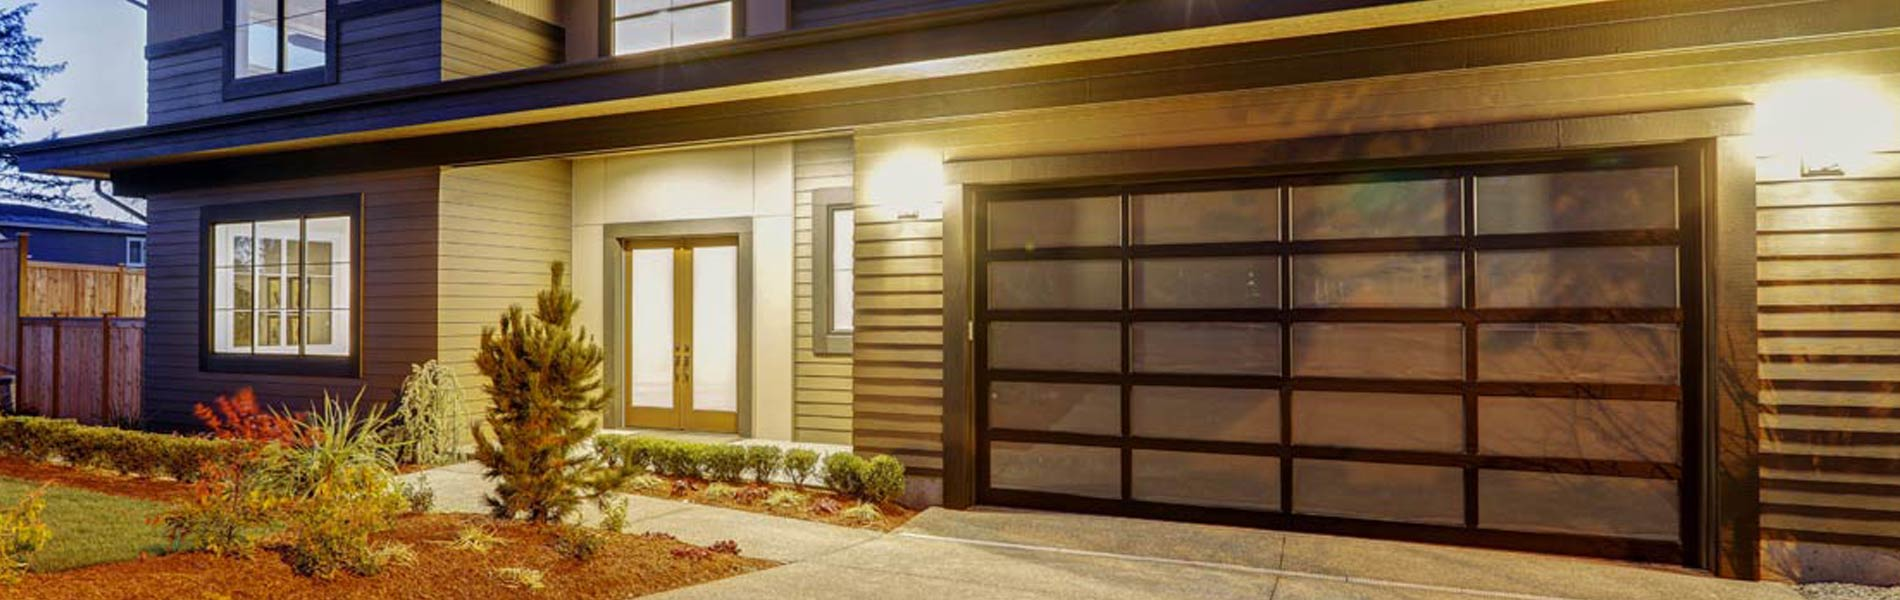 Garage Door And Opener Repairs, Waterford Twp, MI 248-467-1969